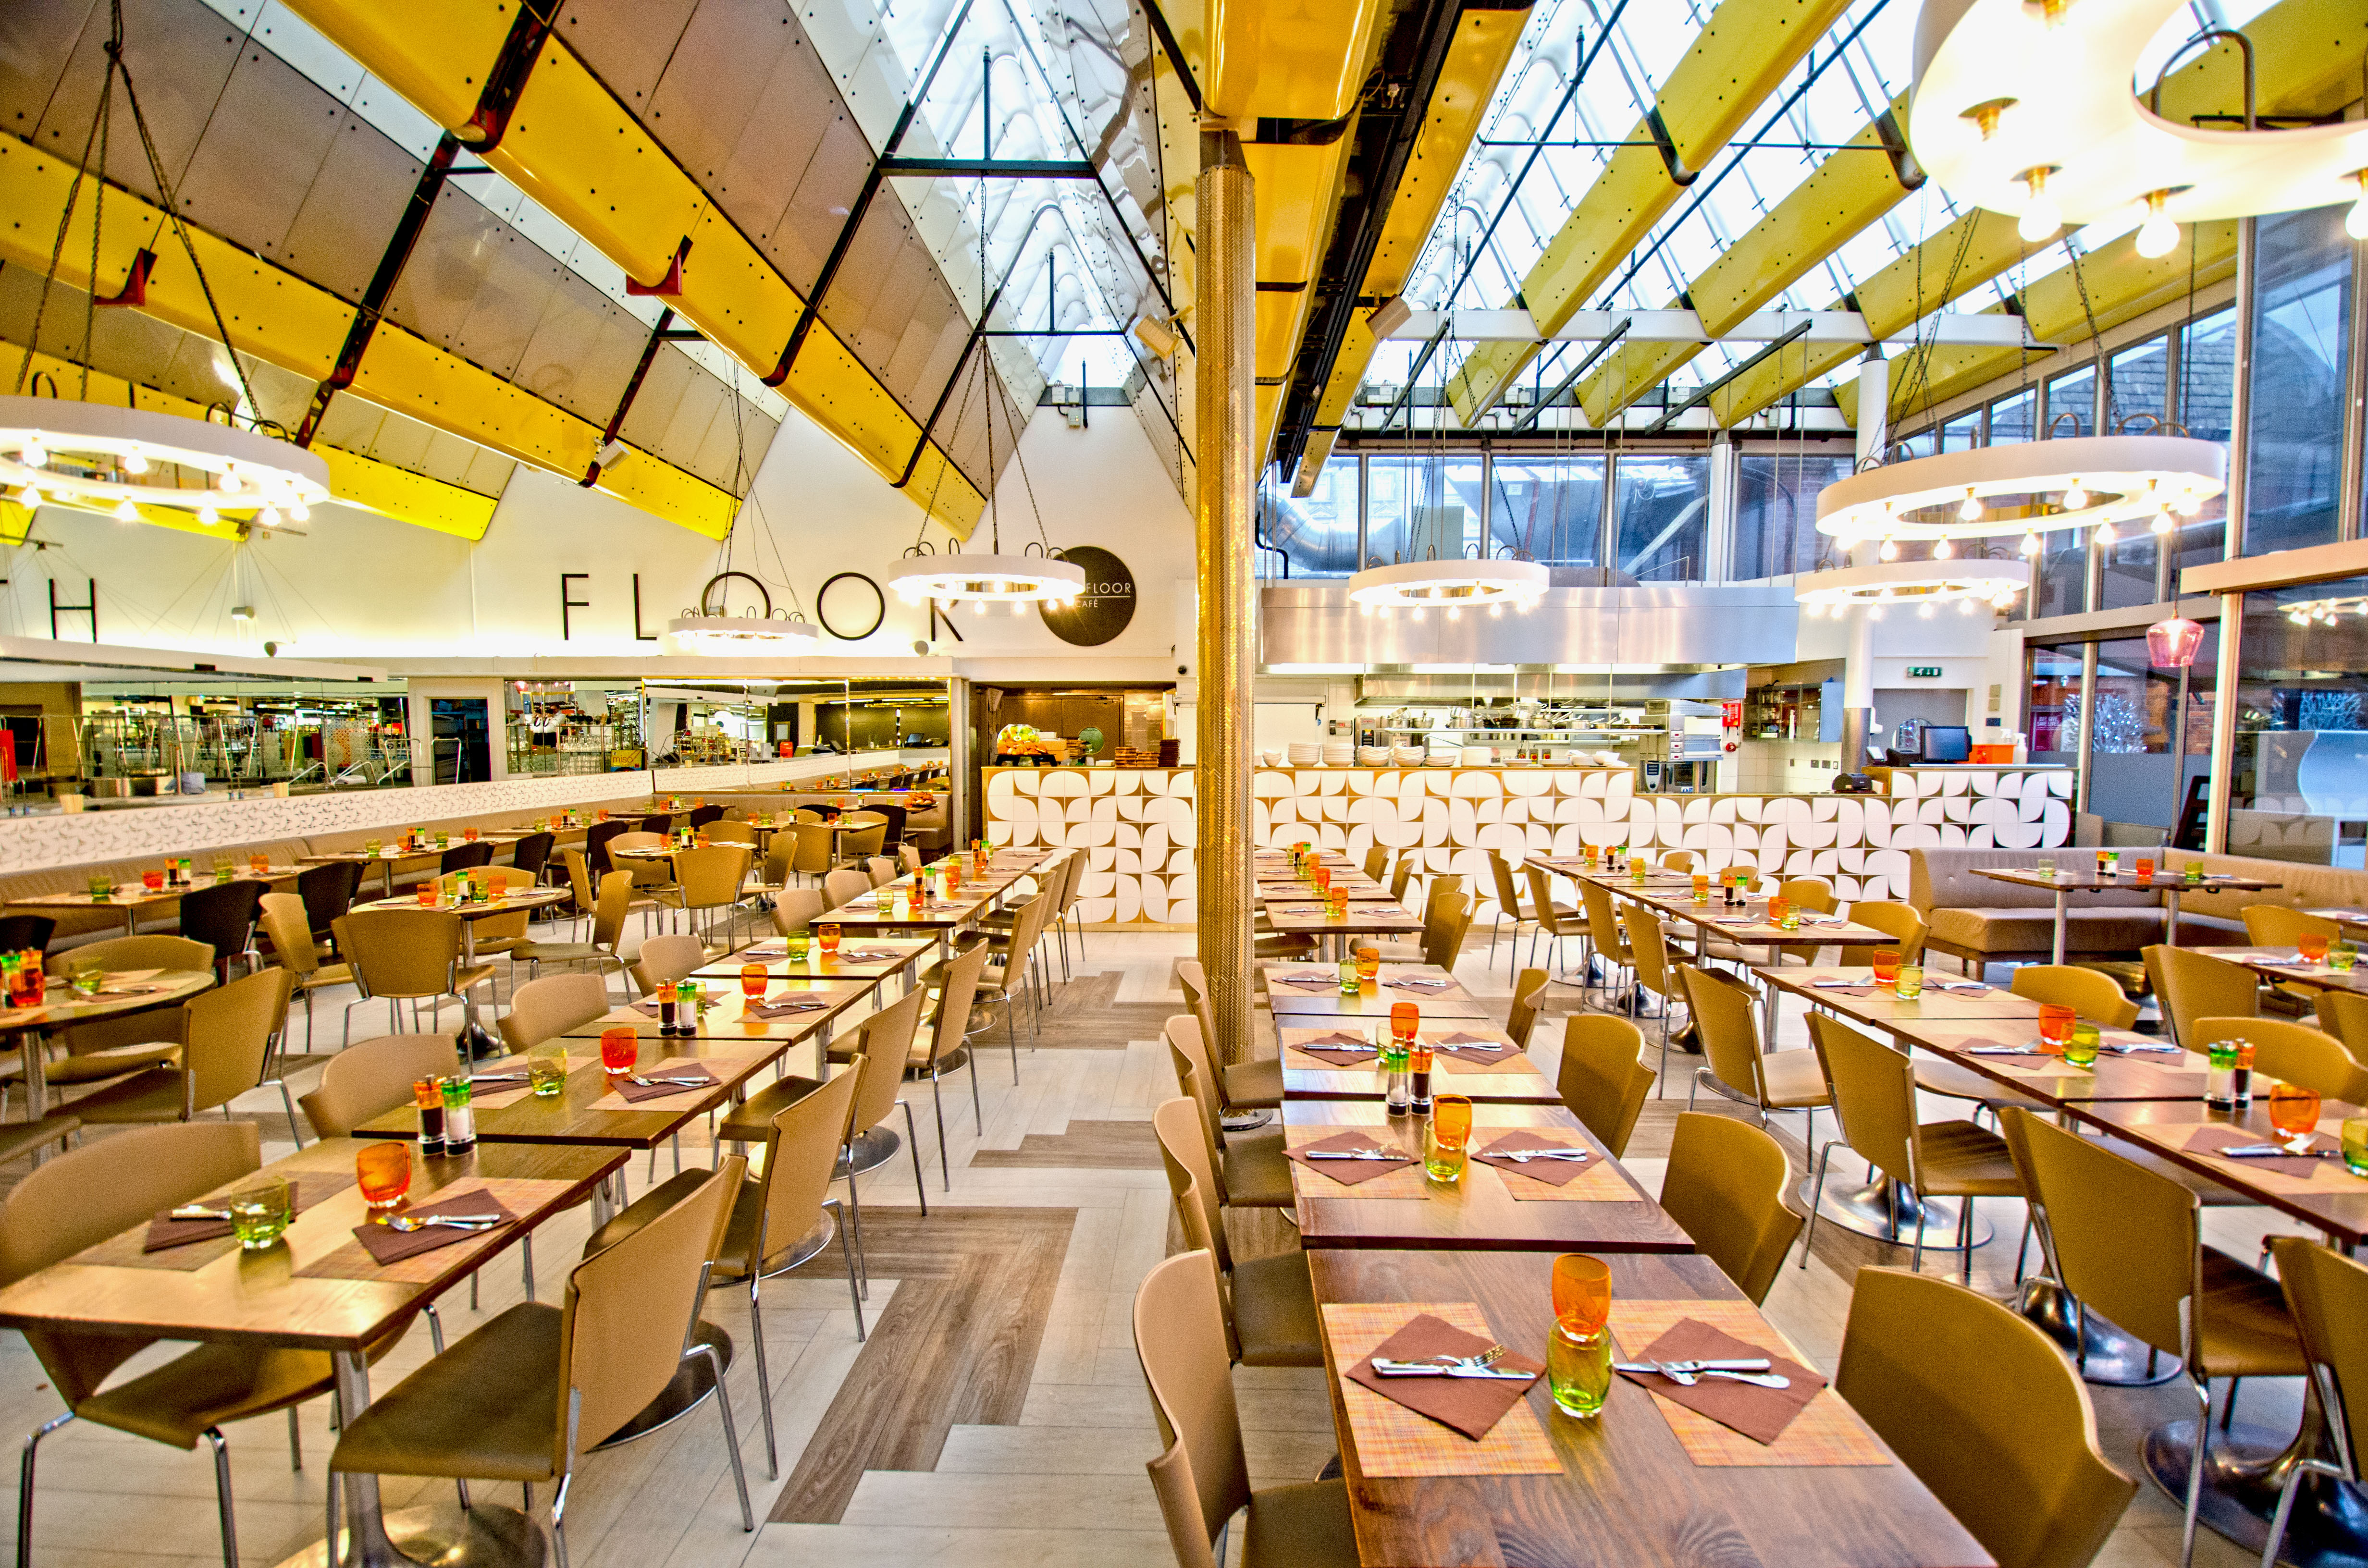 Fifth Floor Café, Harvey Nichols Knightsbridge - London